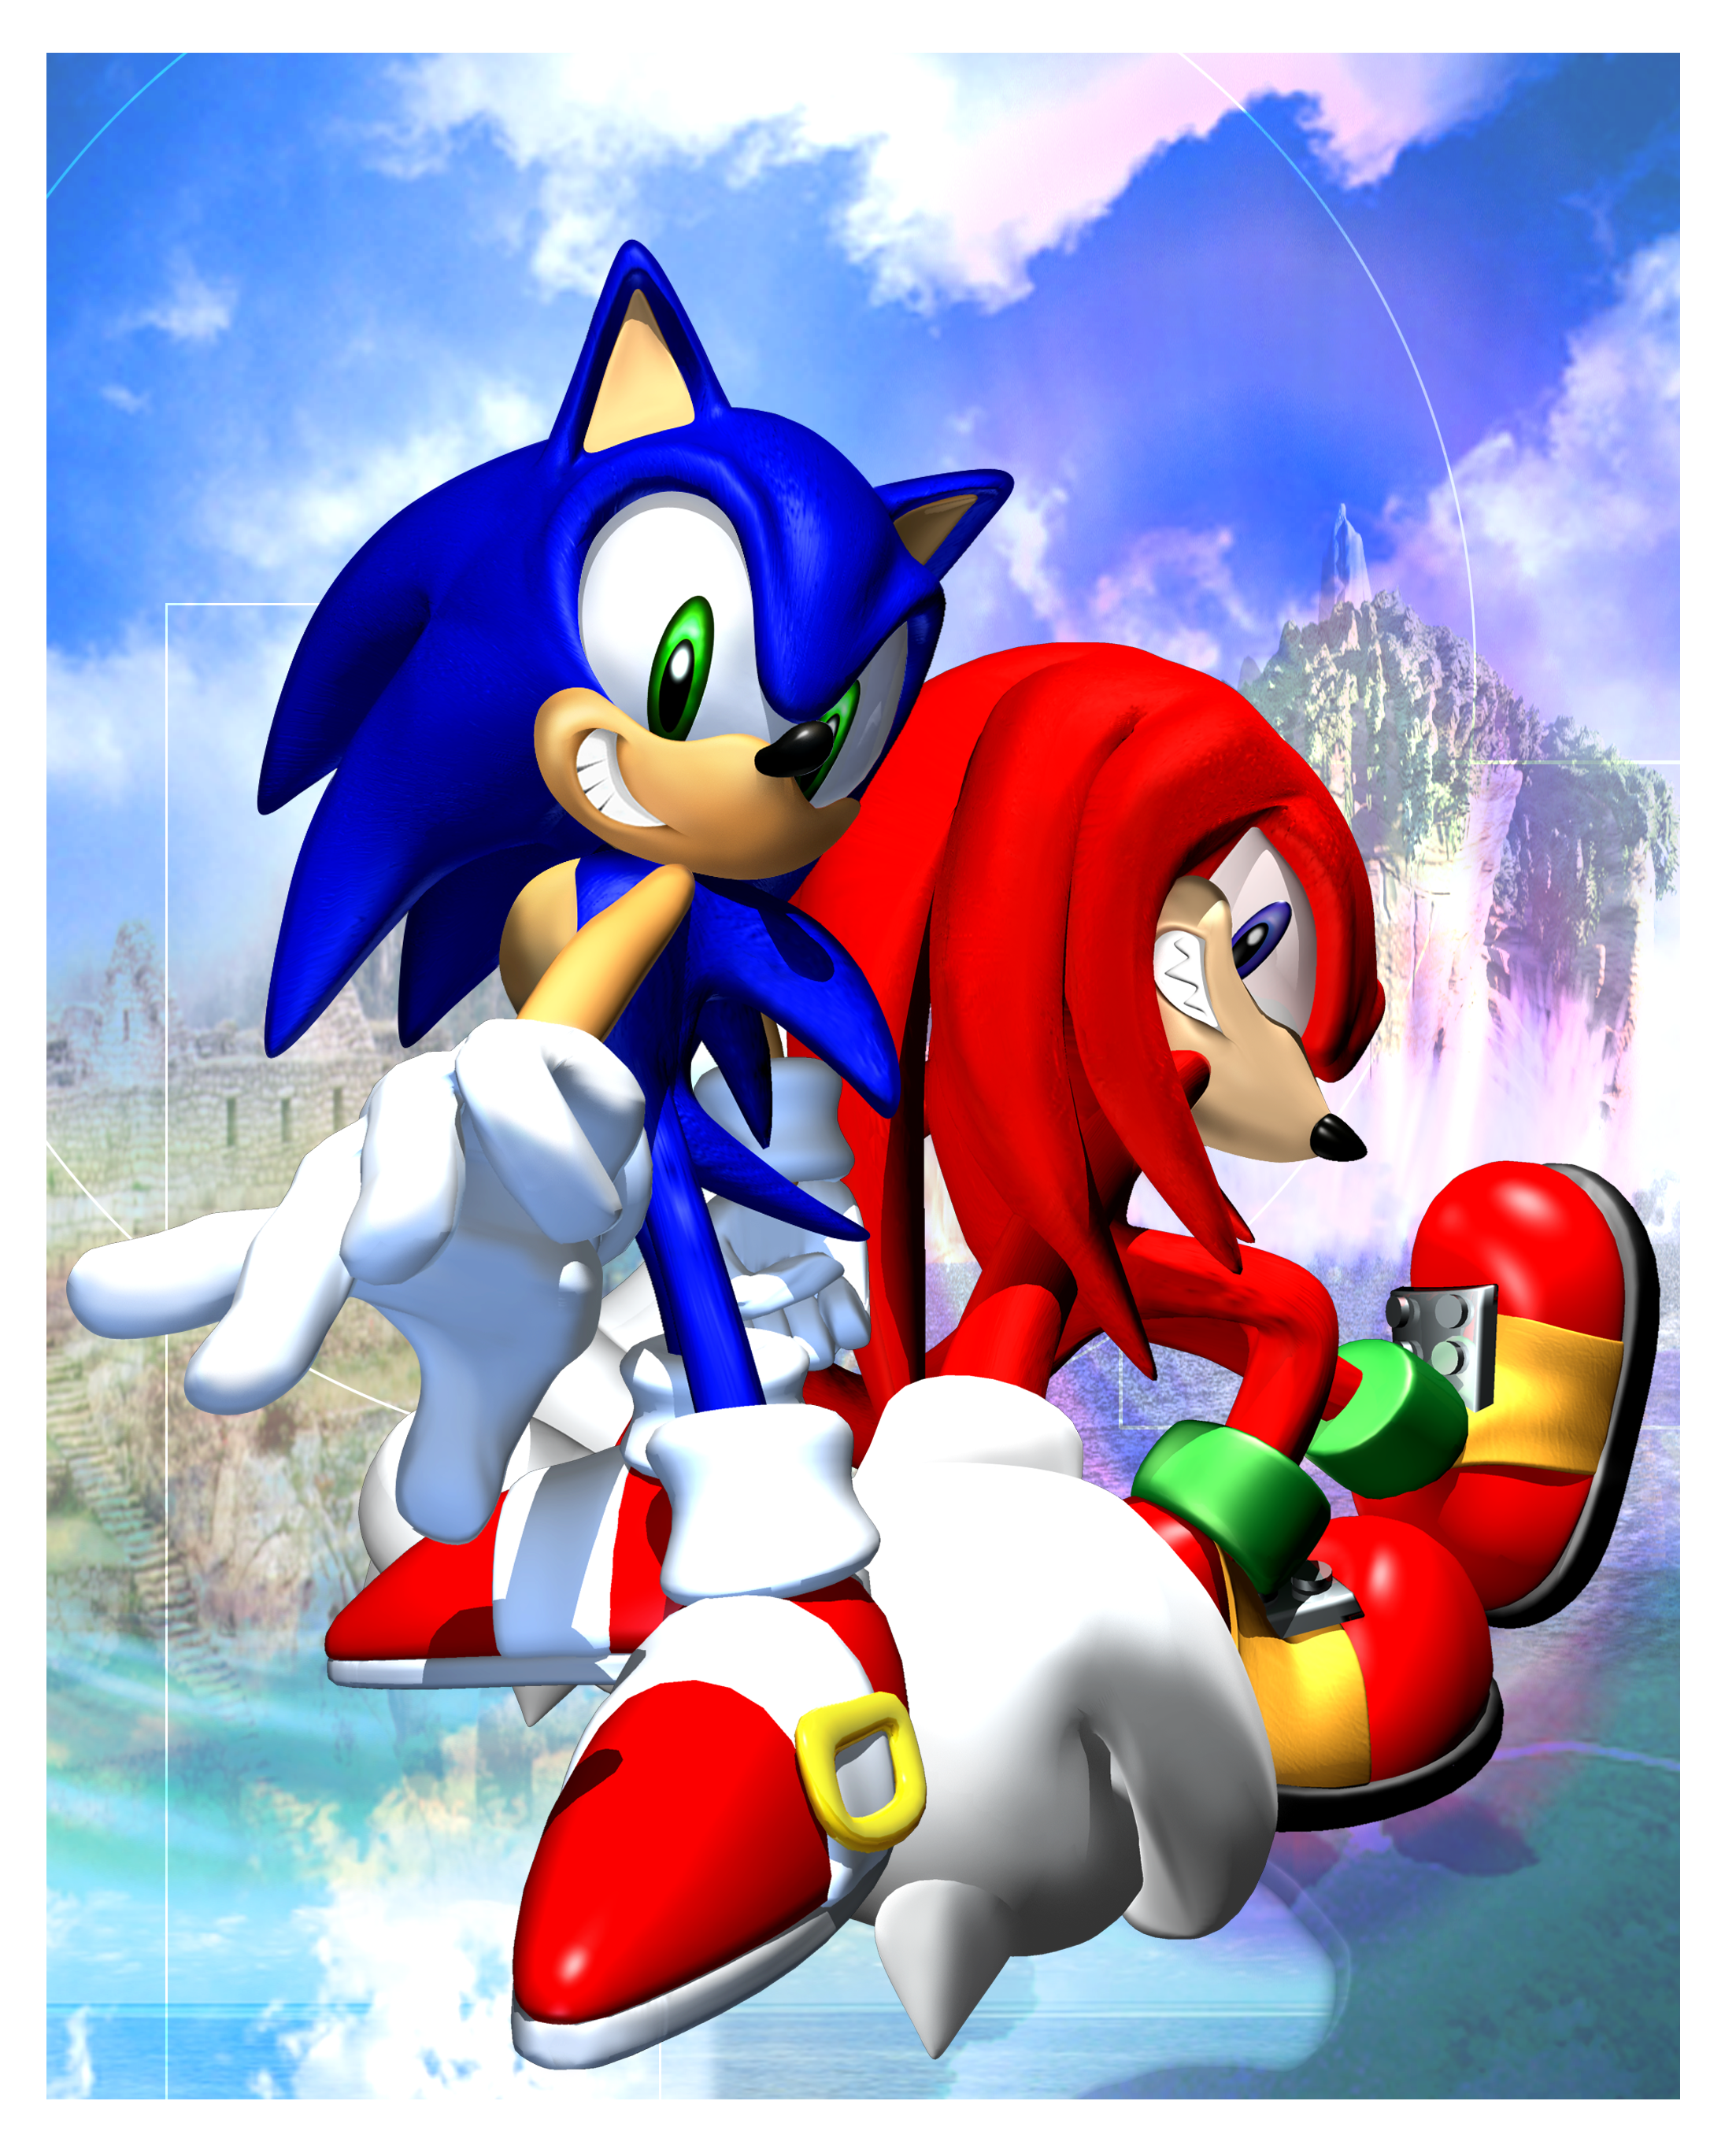 It is an image of Refreshing Images of Sonic